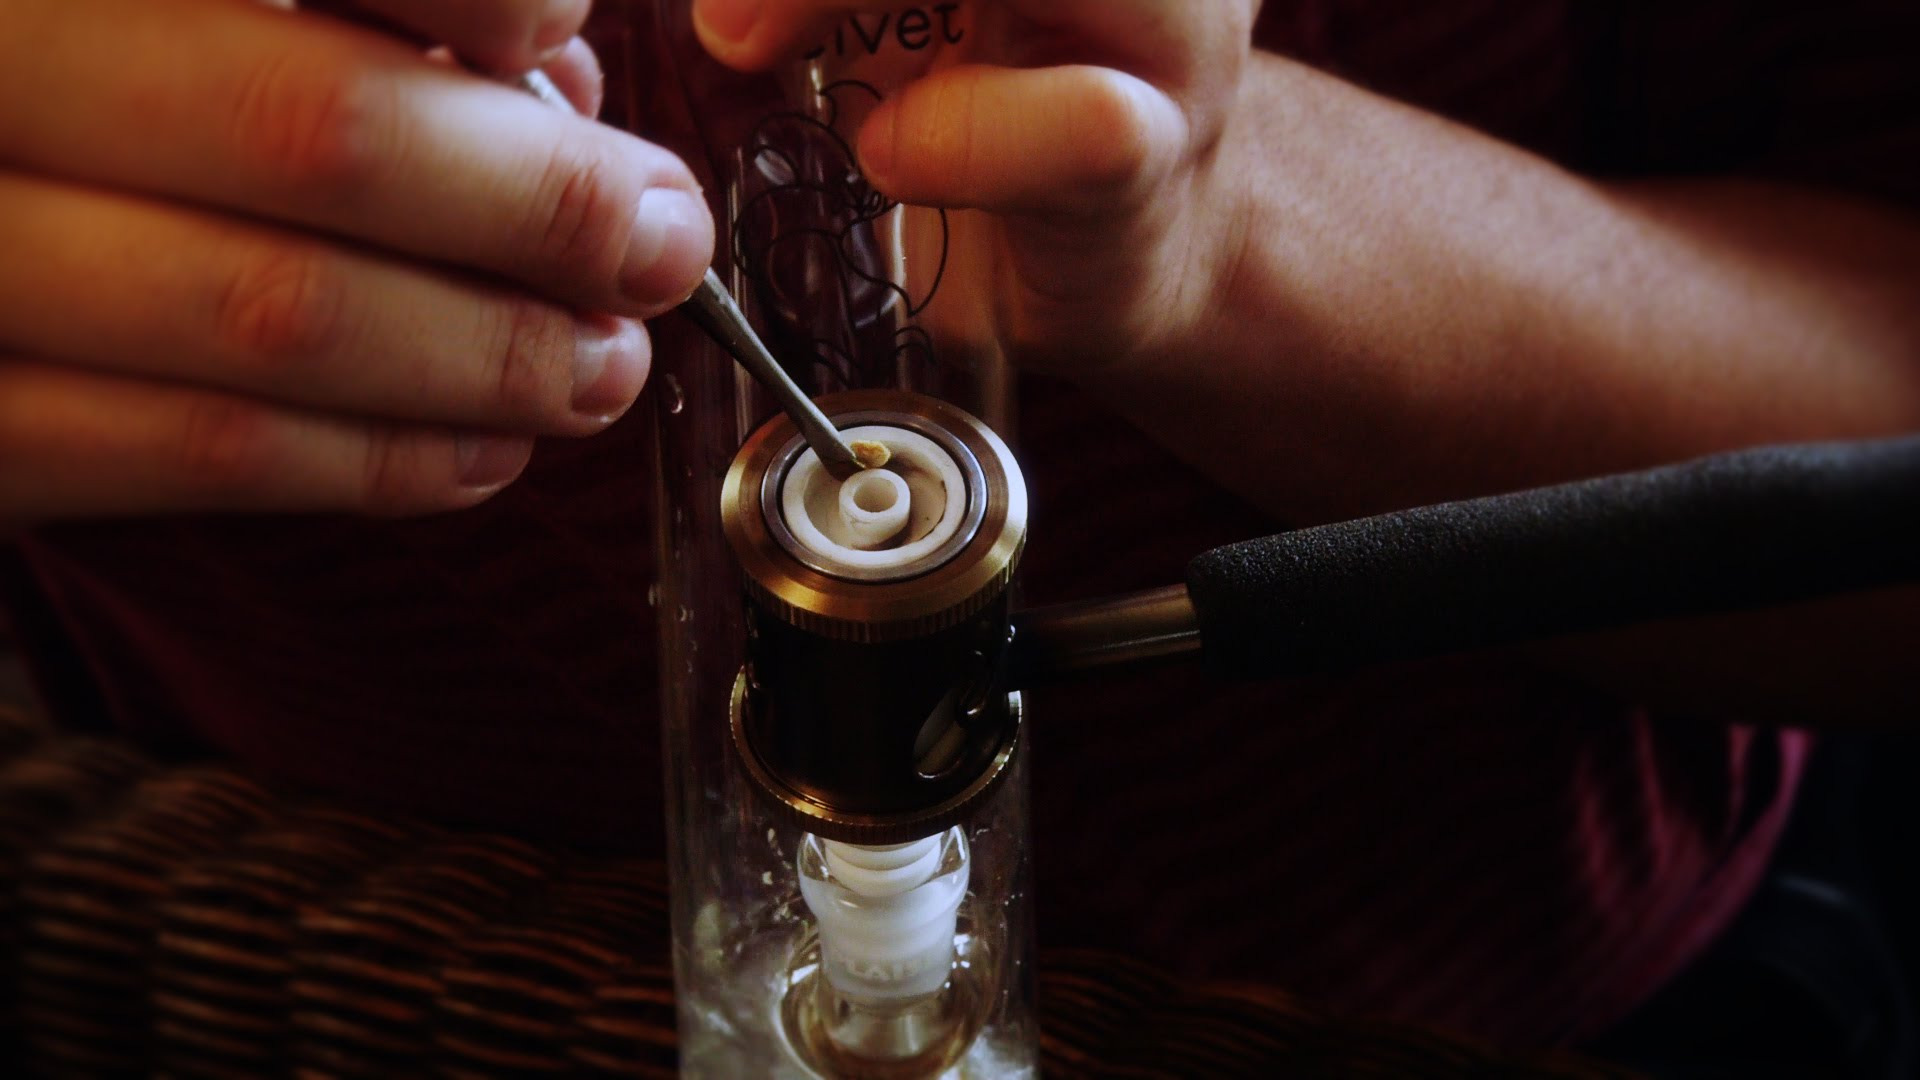 3 Ways to Smoke Marijuana Concentrates/Wax: Domes, Nails & E-Nails